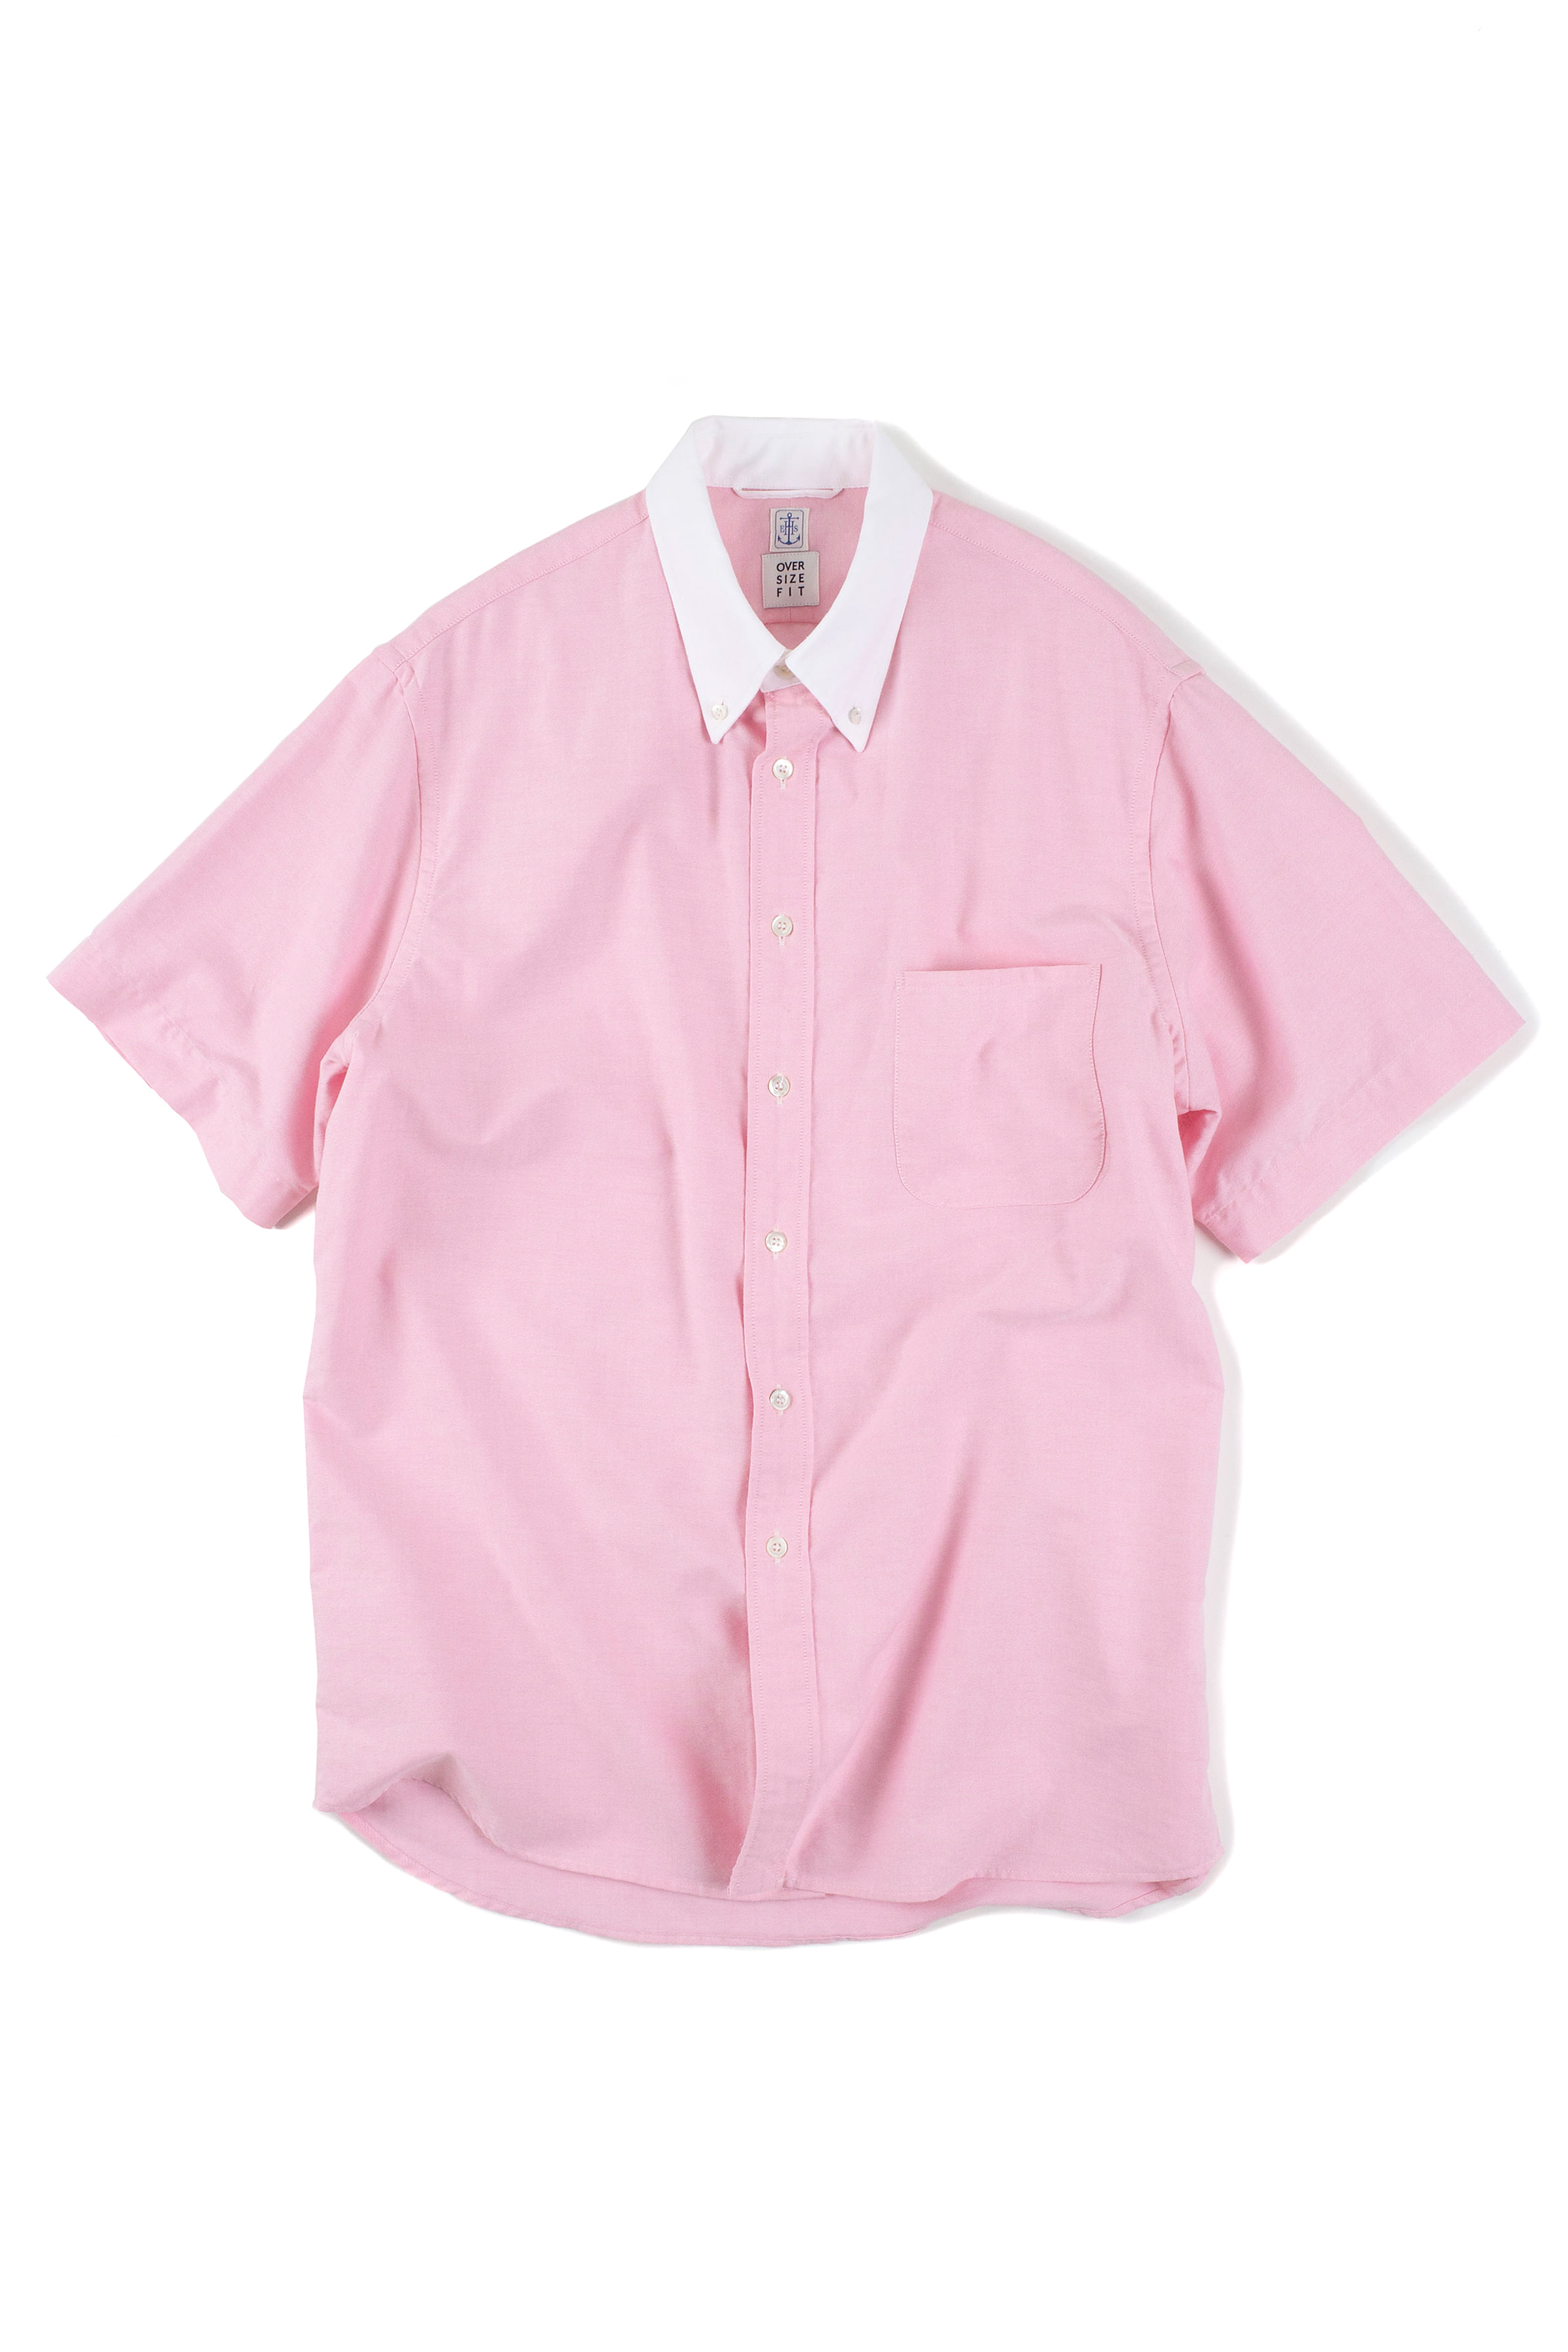 East Harbour Surplus : Campus Button Down Shirts (Pink)